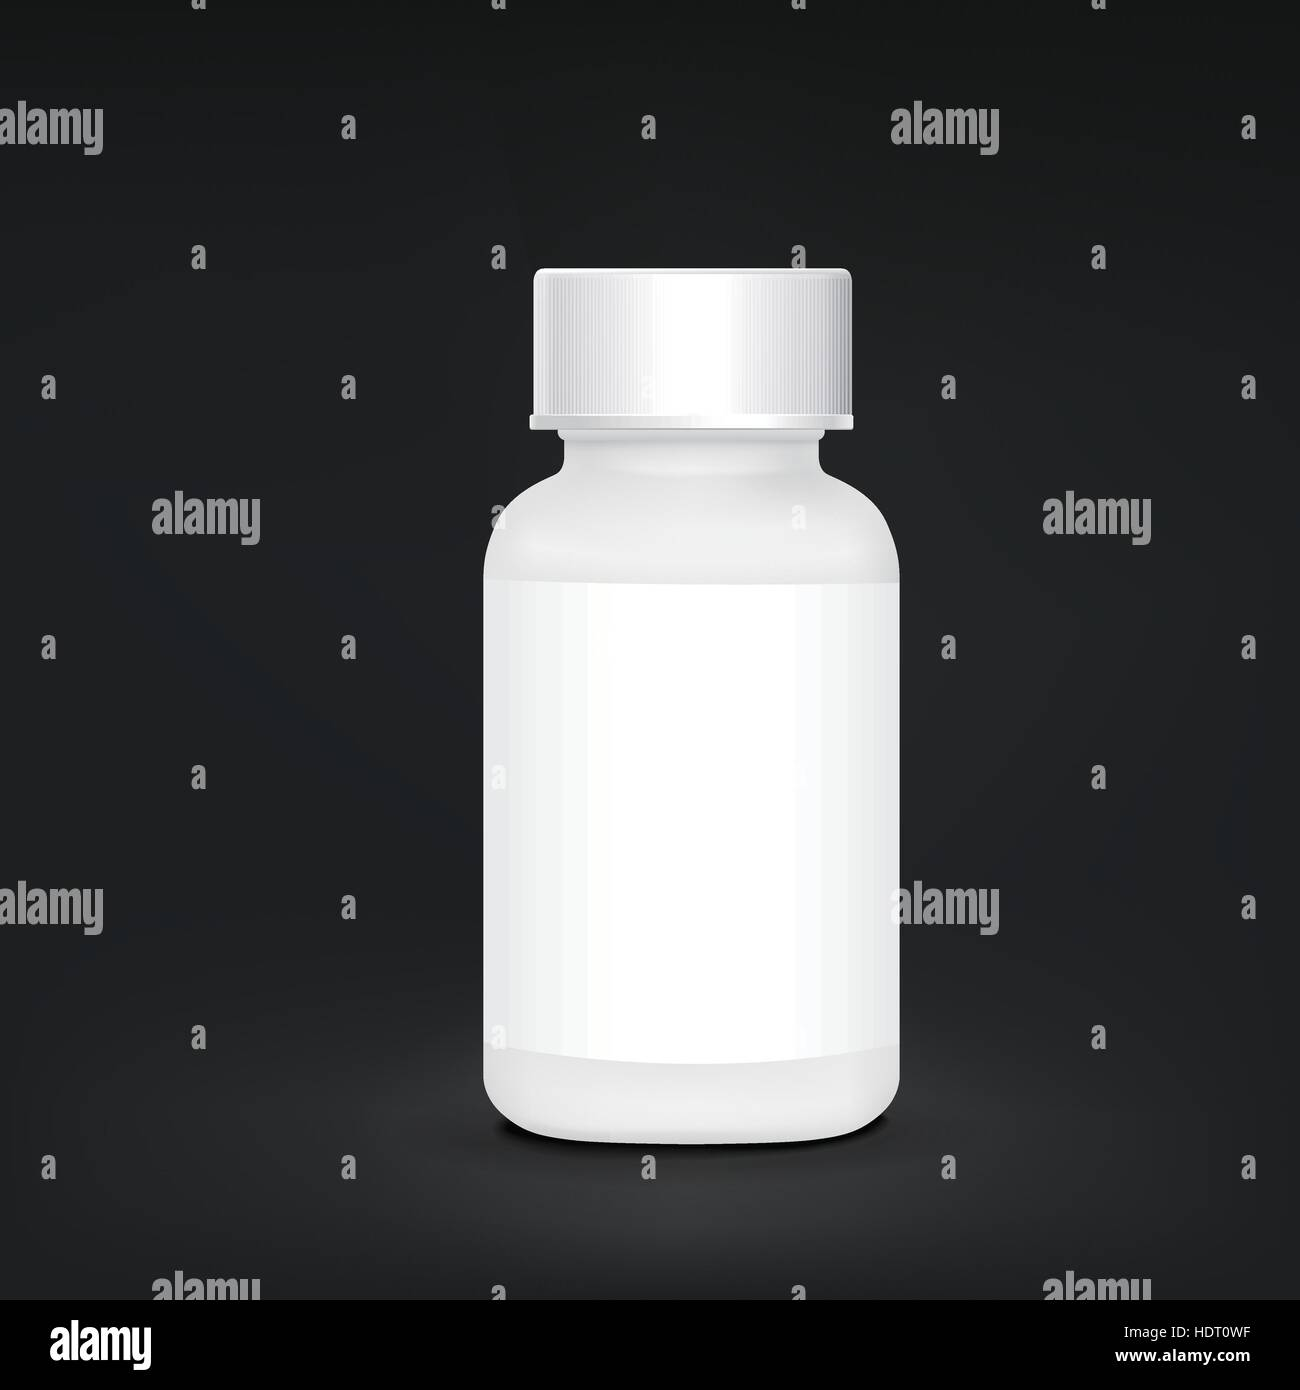 white plastic medical container isolated on black background - Stock Vector